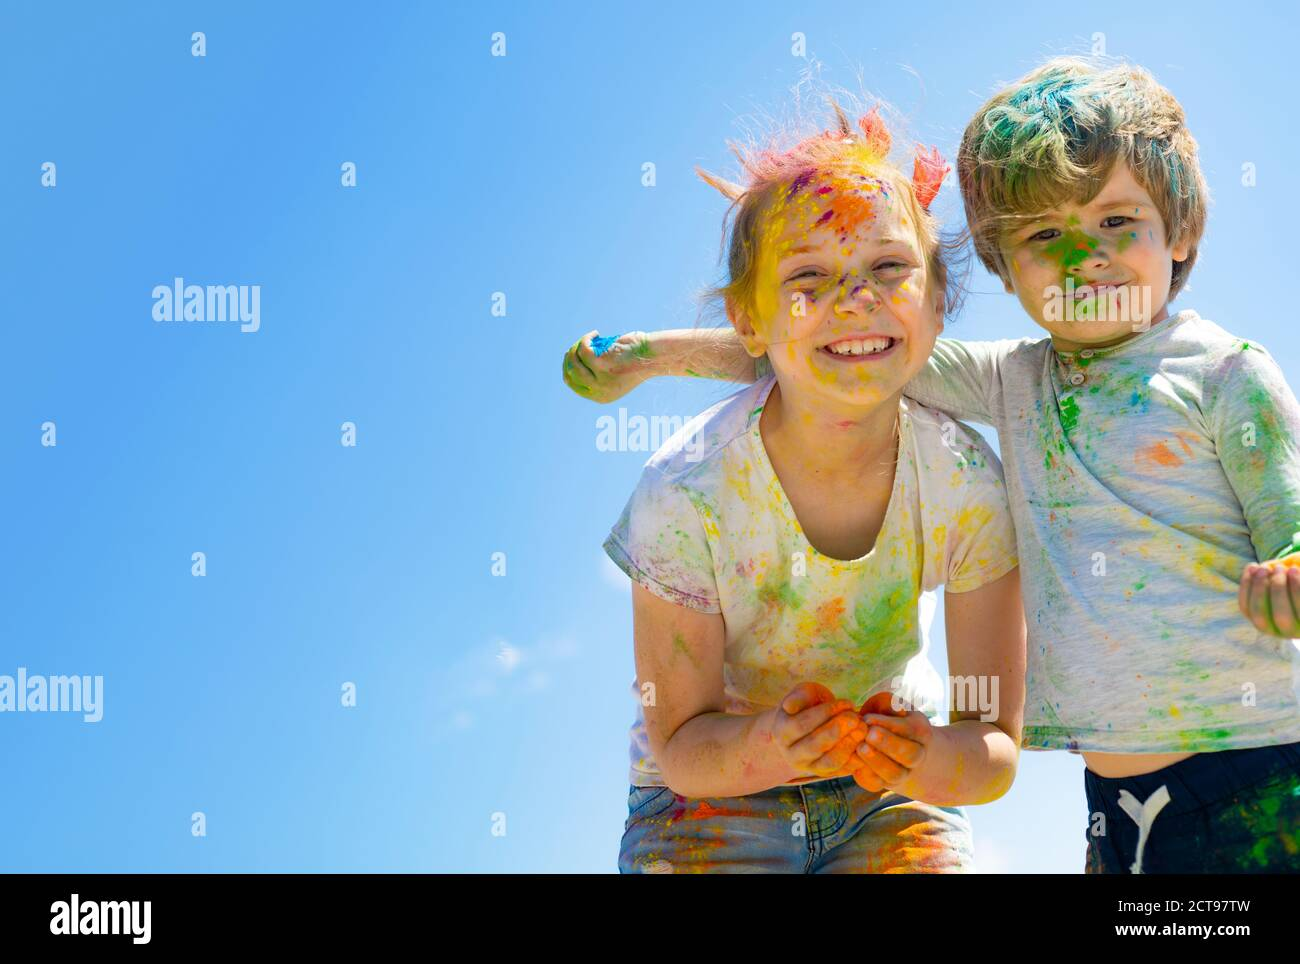 Two kids with face smeared with colors Stock Photo